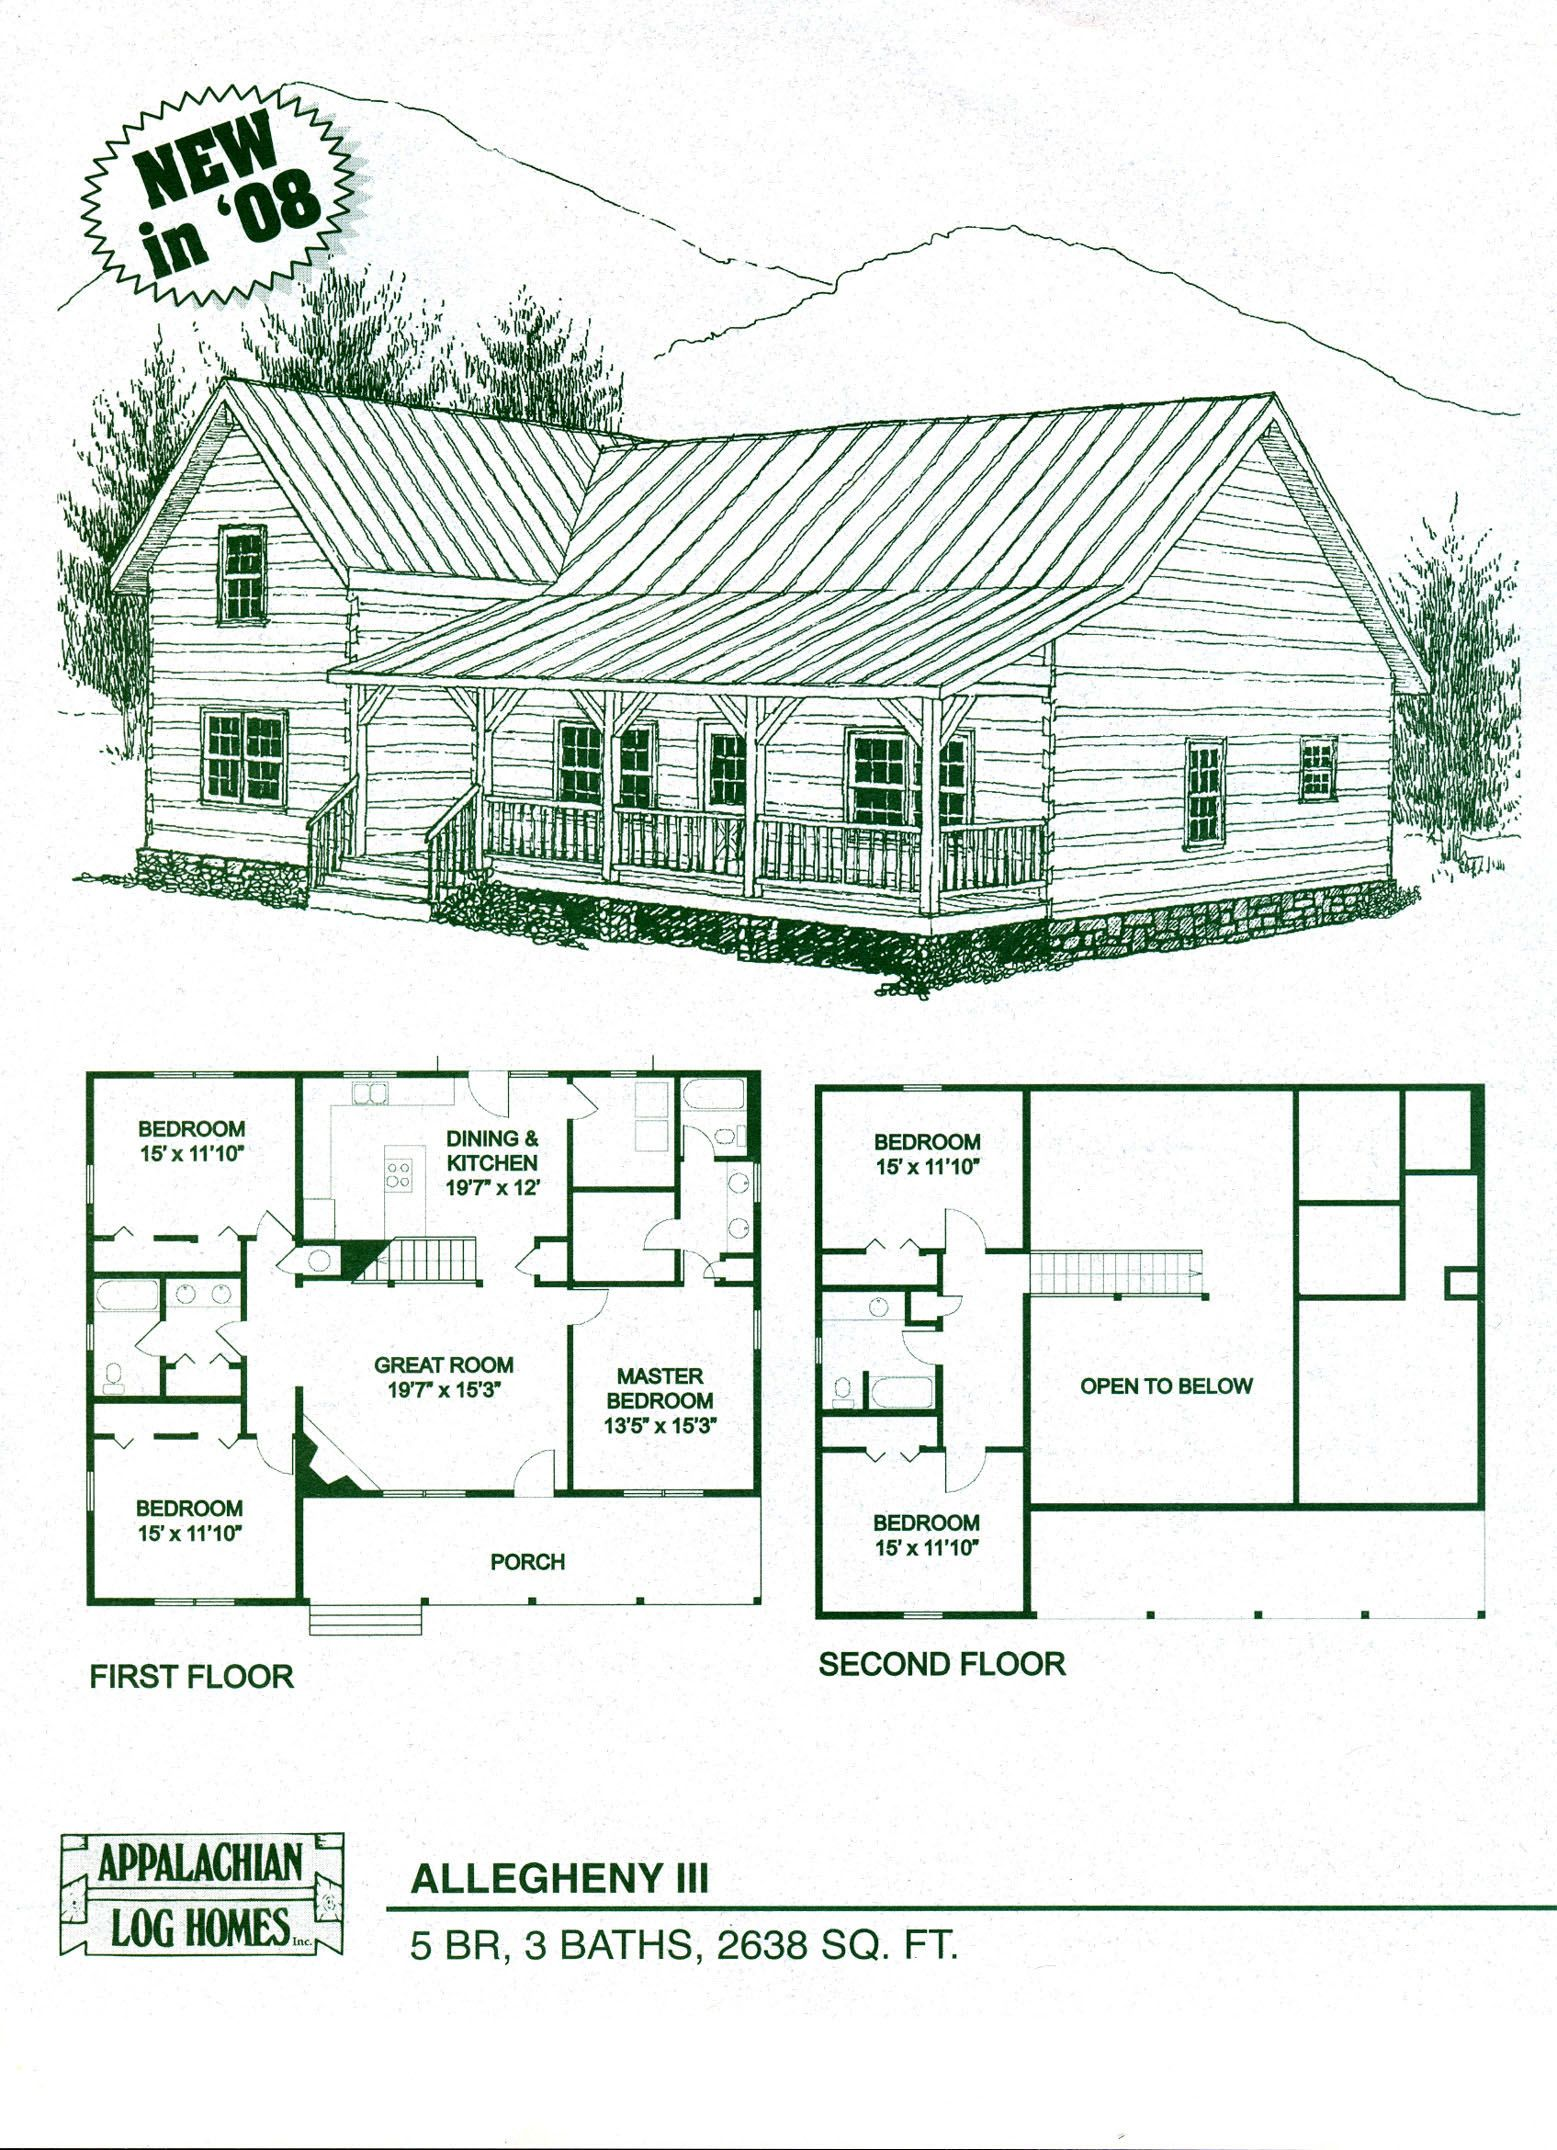 Log Home Floor Plans Log Cabin Kits Appalachian Log Homes Home Pinterest Cabin Floor